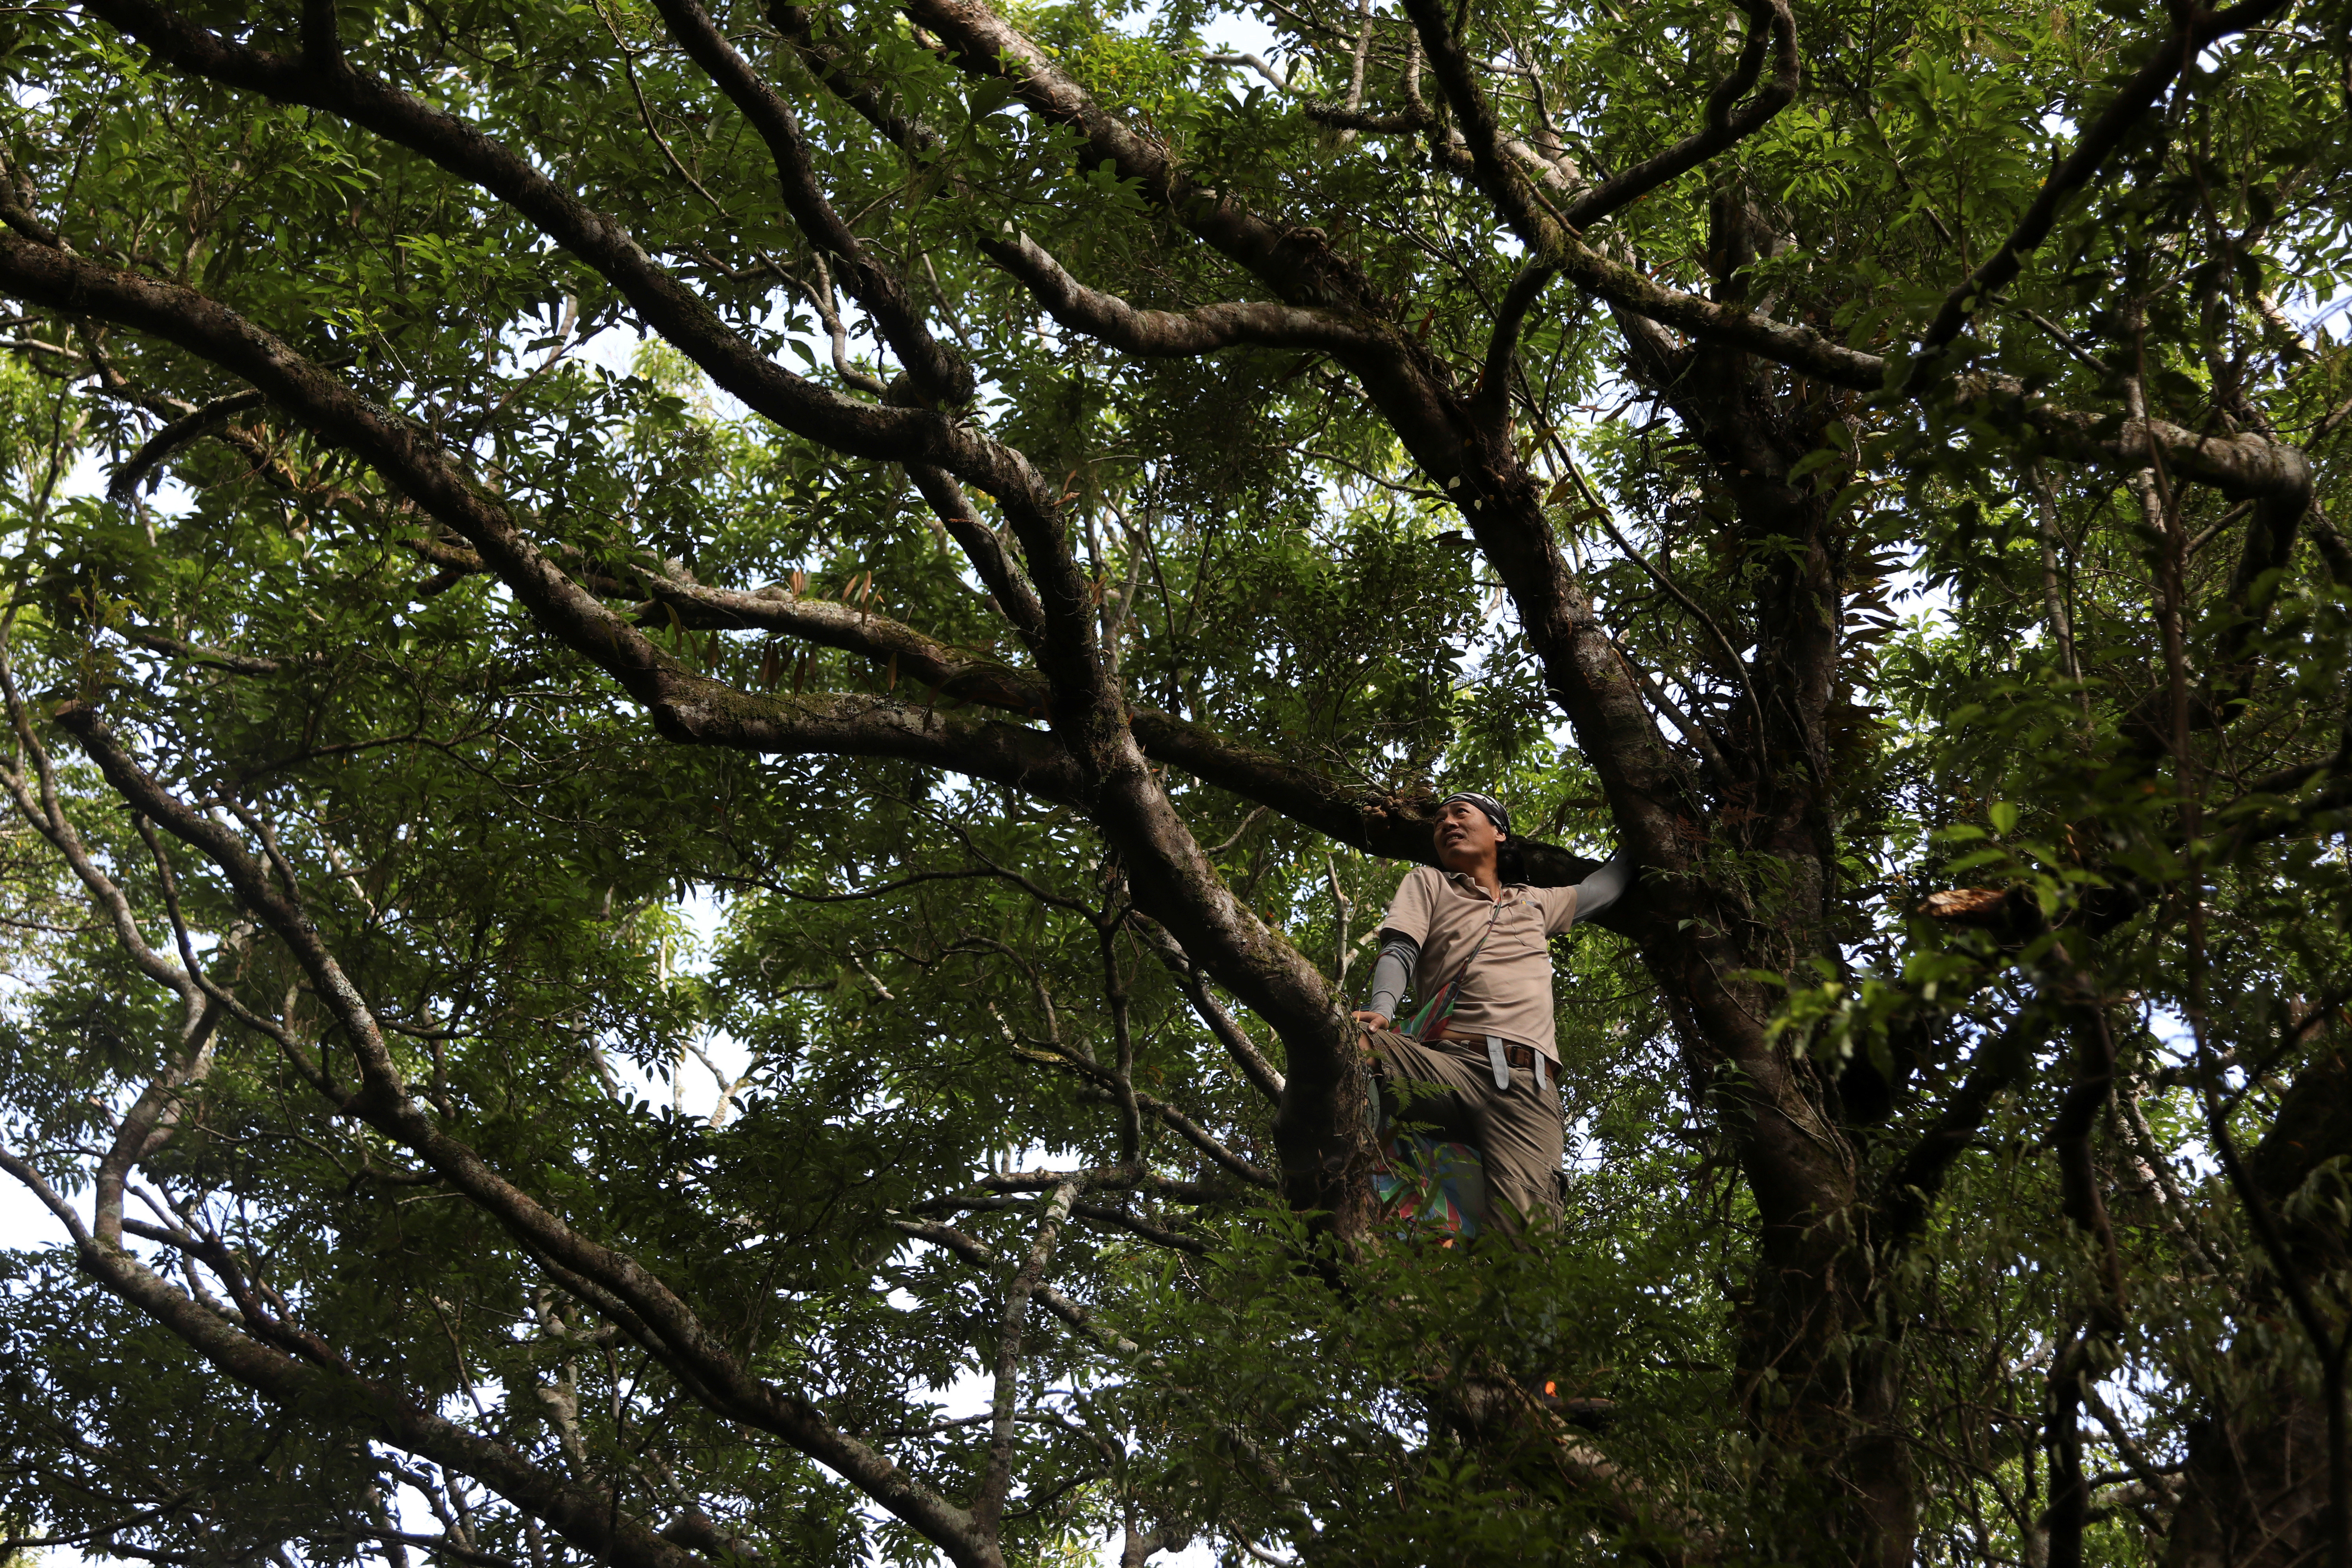 A man poses whilst climbing a tree